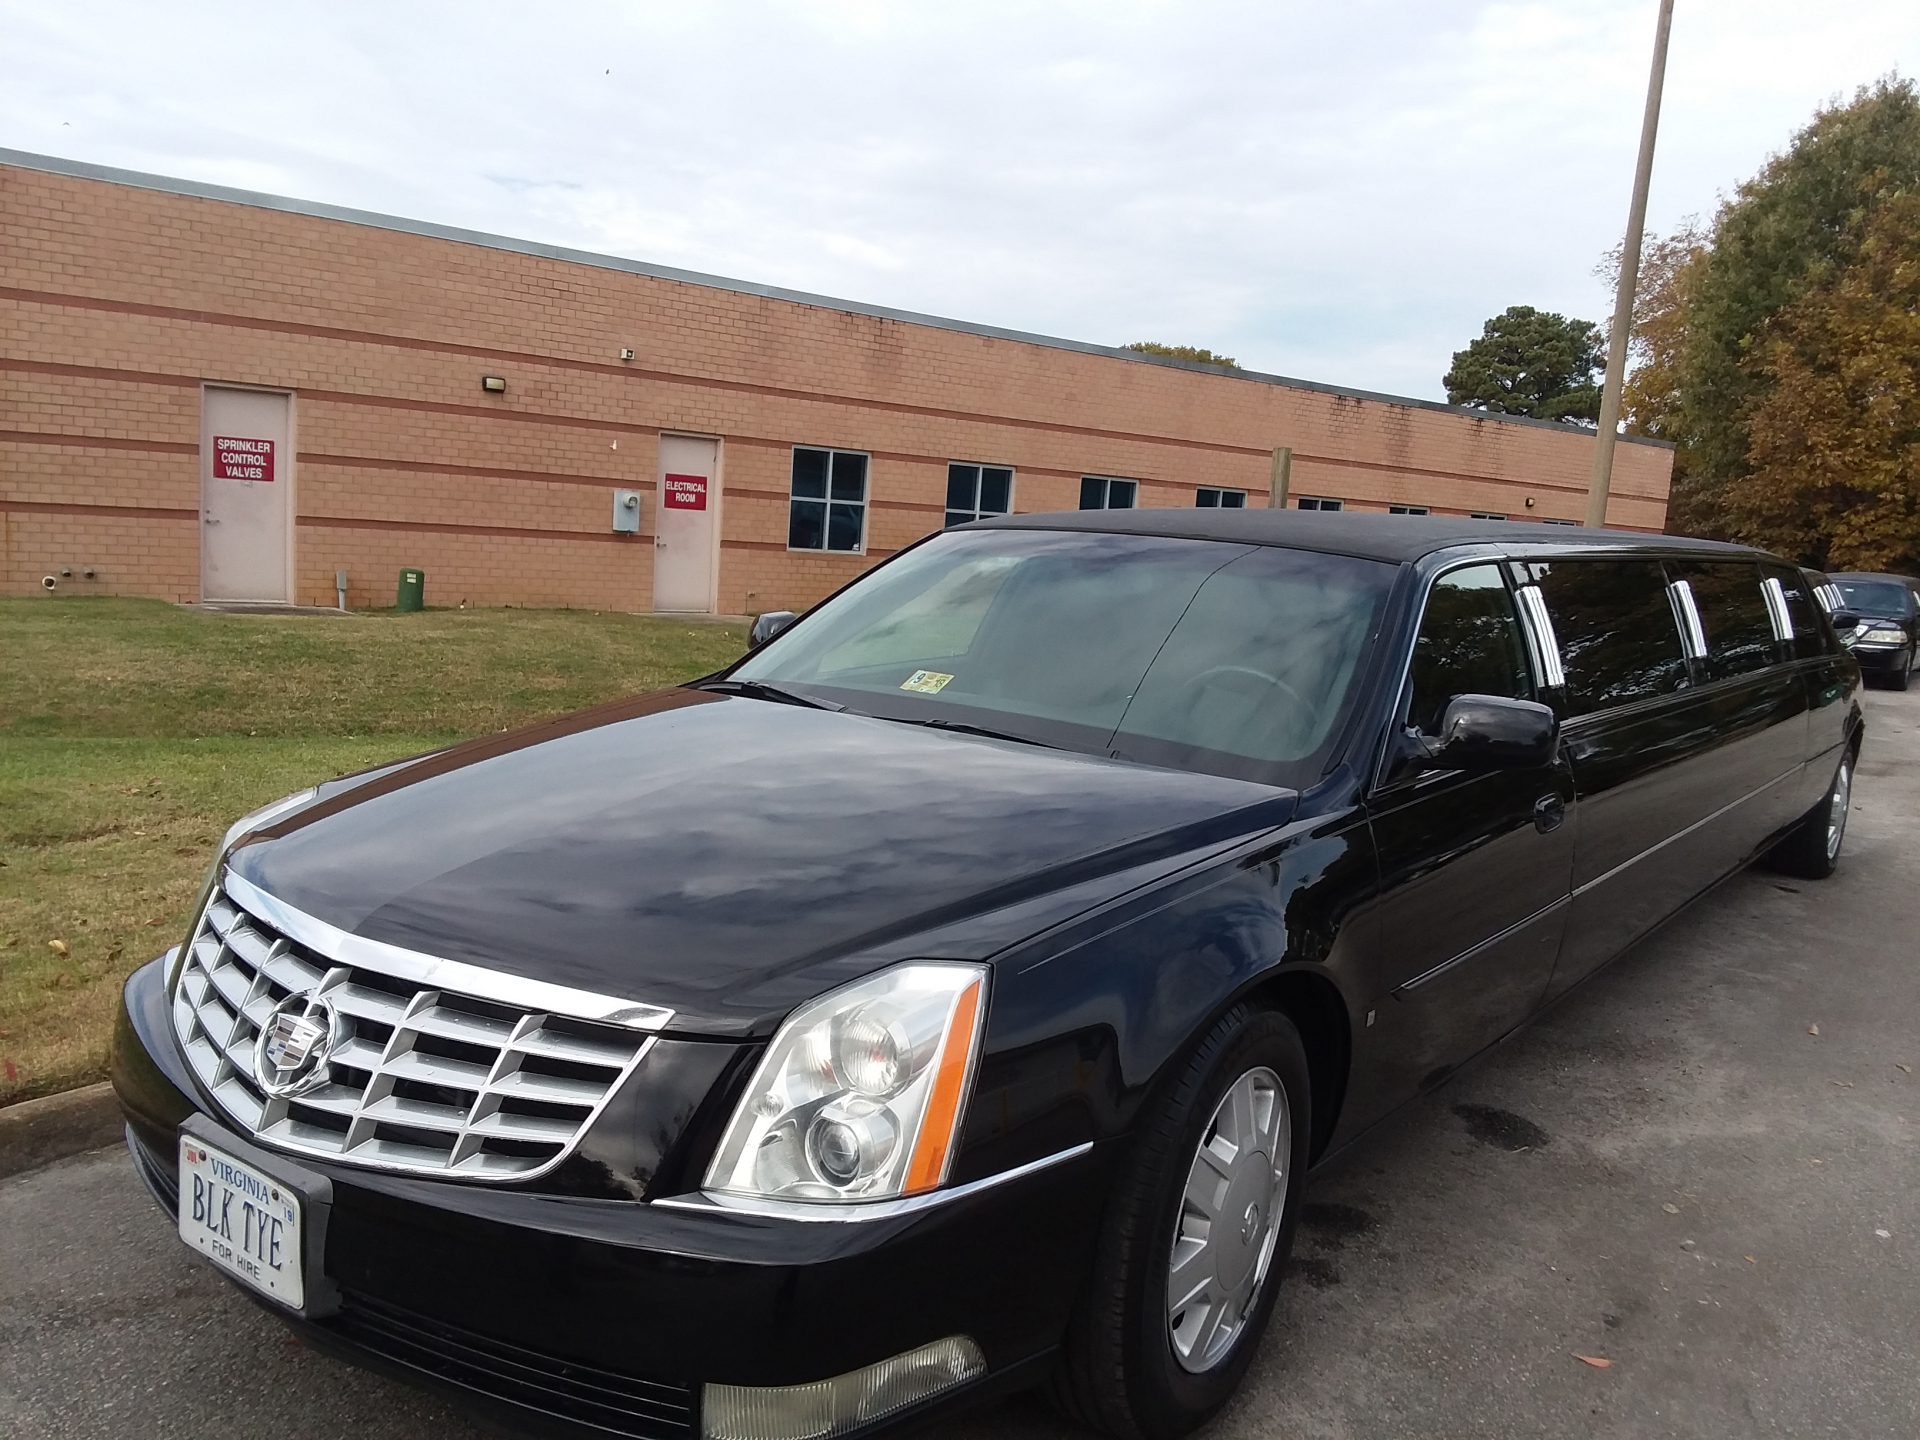 Black Cadillac Stretch Luxury Limousine  Limo / Richmond, VA   / Hourly $0.00